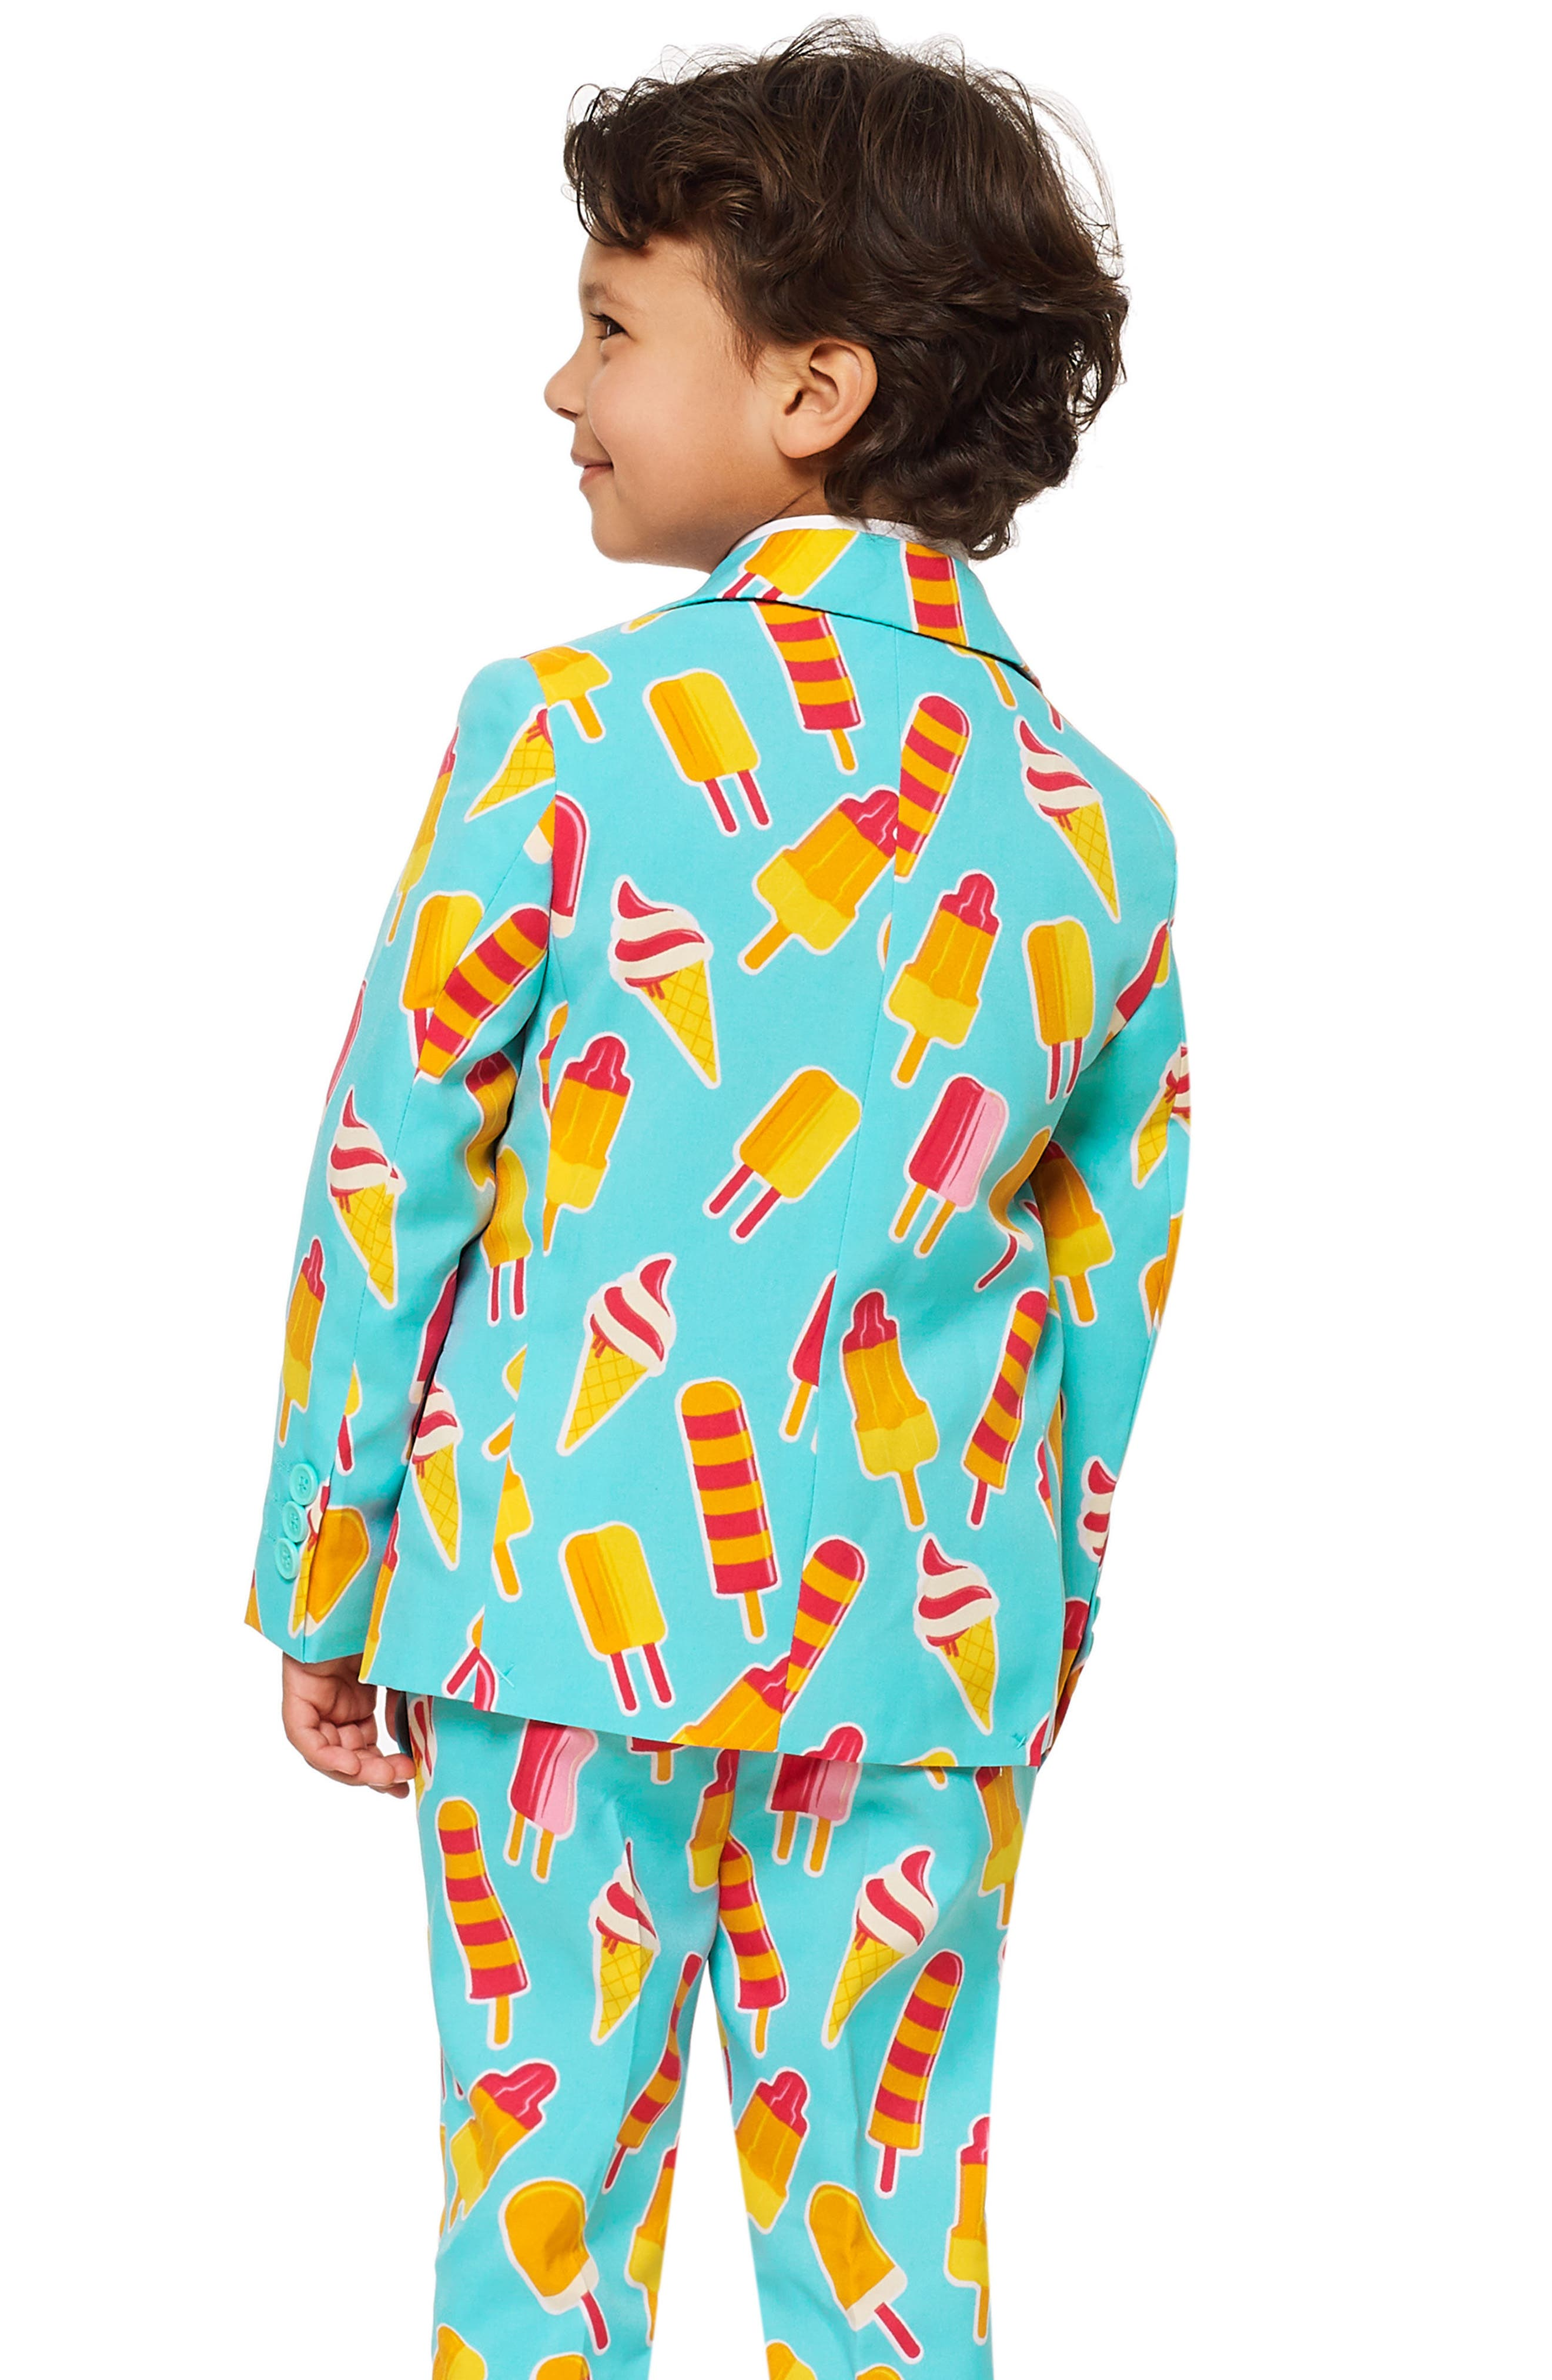 OPPOSUITS,                             Cool Cones Two-Piece Suit with Tie,                             Alternate thumbnail 2, color,                             BLUE